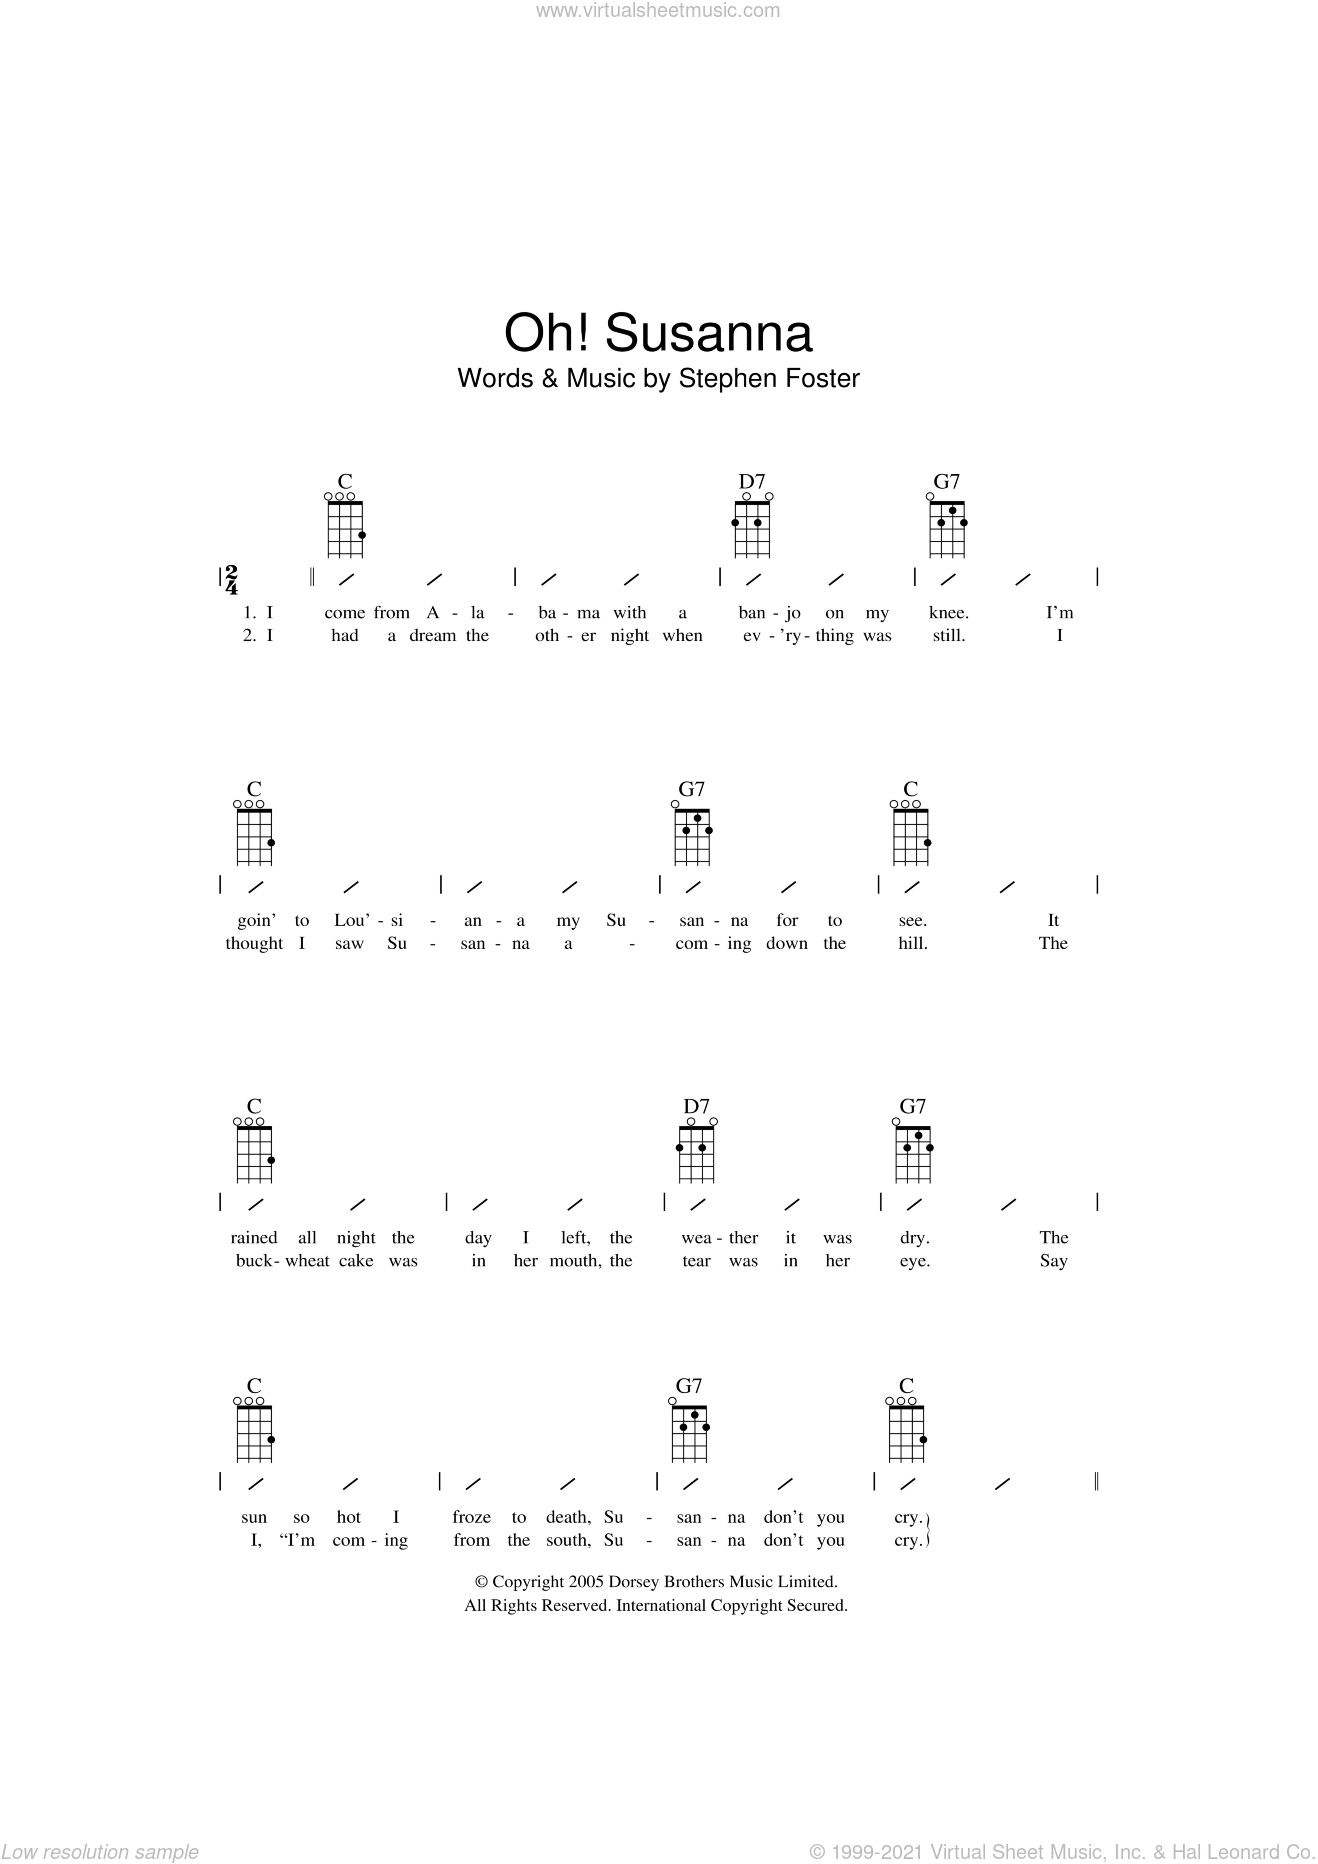 Oh! Susanna sheet music for ukulele (chords) by Stephen Foster and Miscellaneous, intermediate skill level